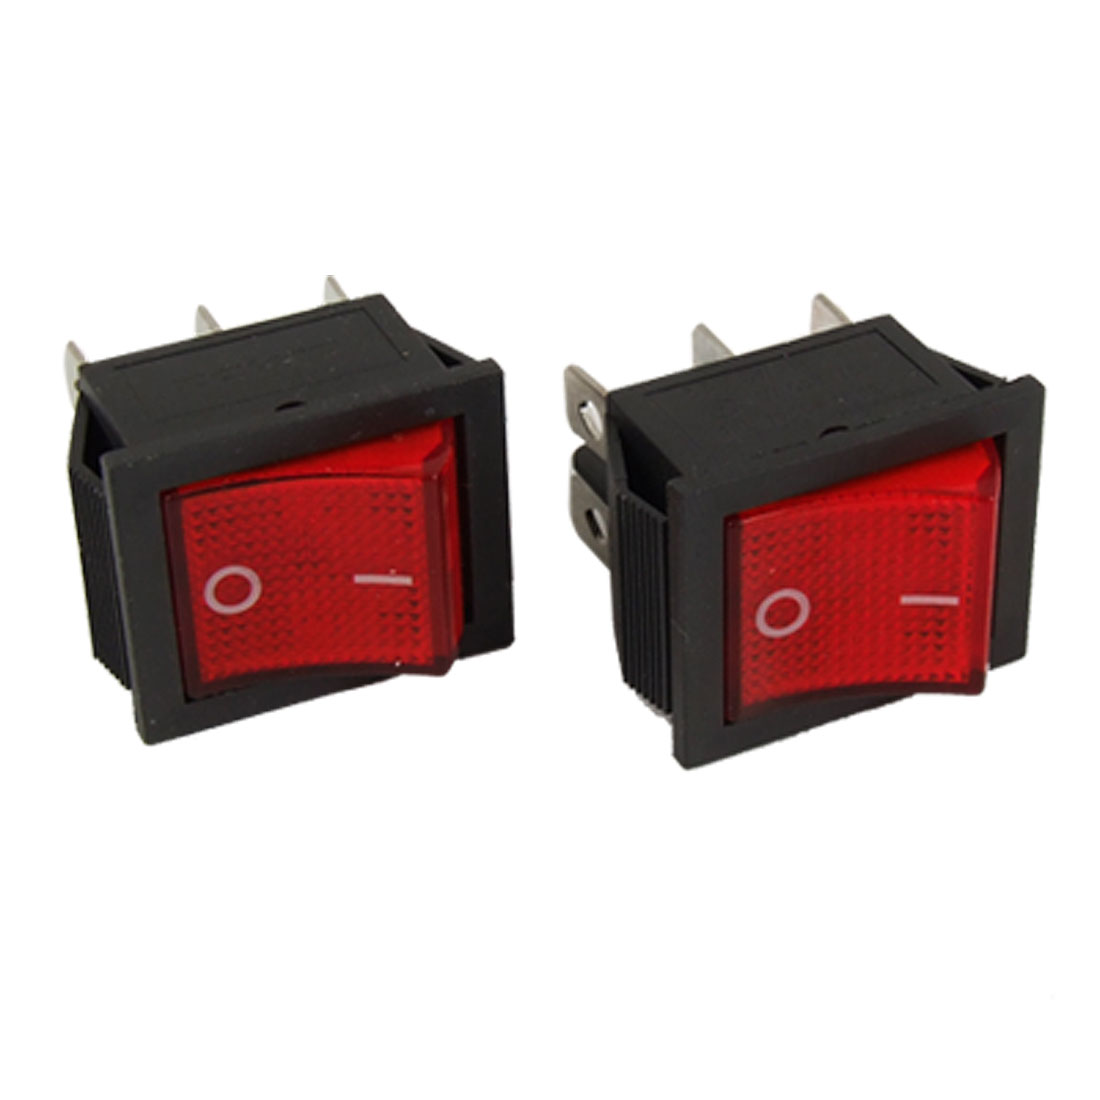 2pcs AC 16A/250V 20A/125V Red Light 6 Pin DPDT ON/ON Snap in Boat Rocker Switch